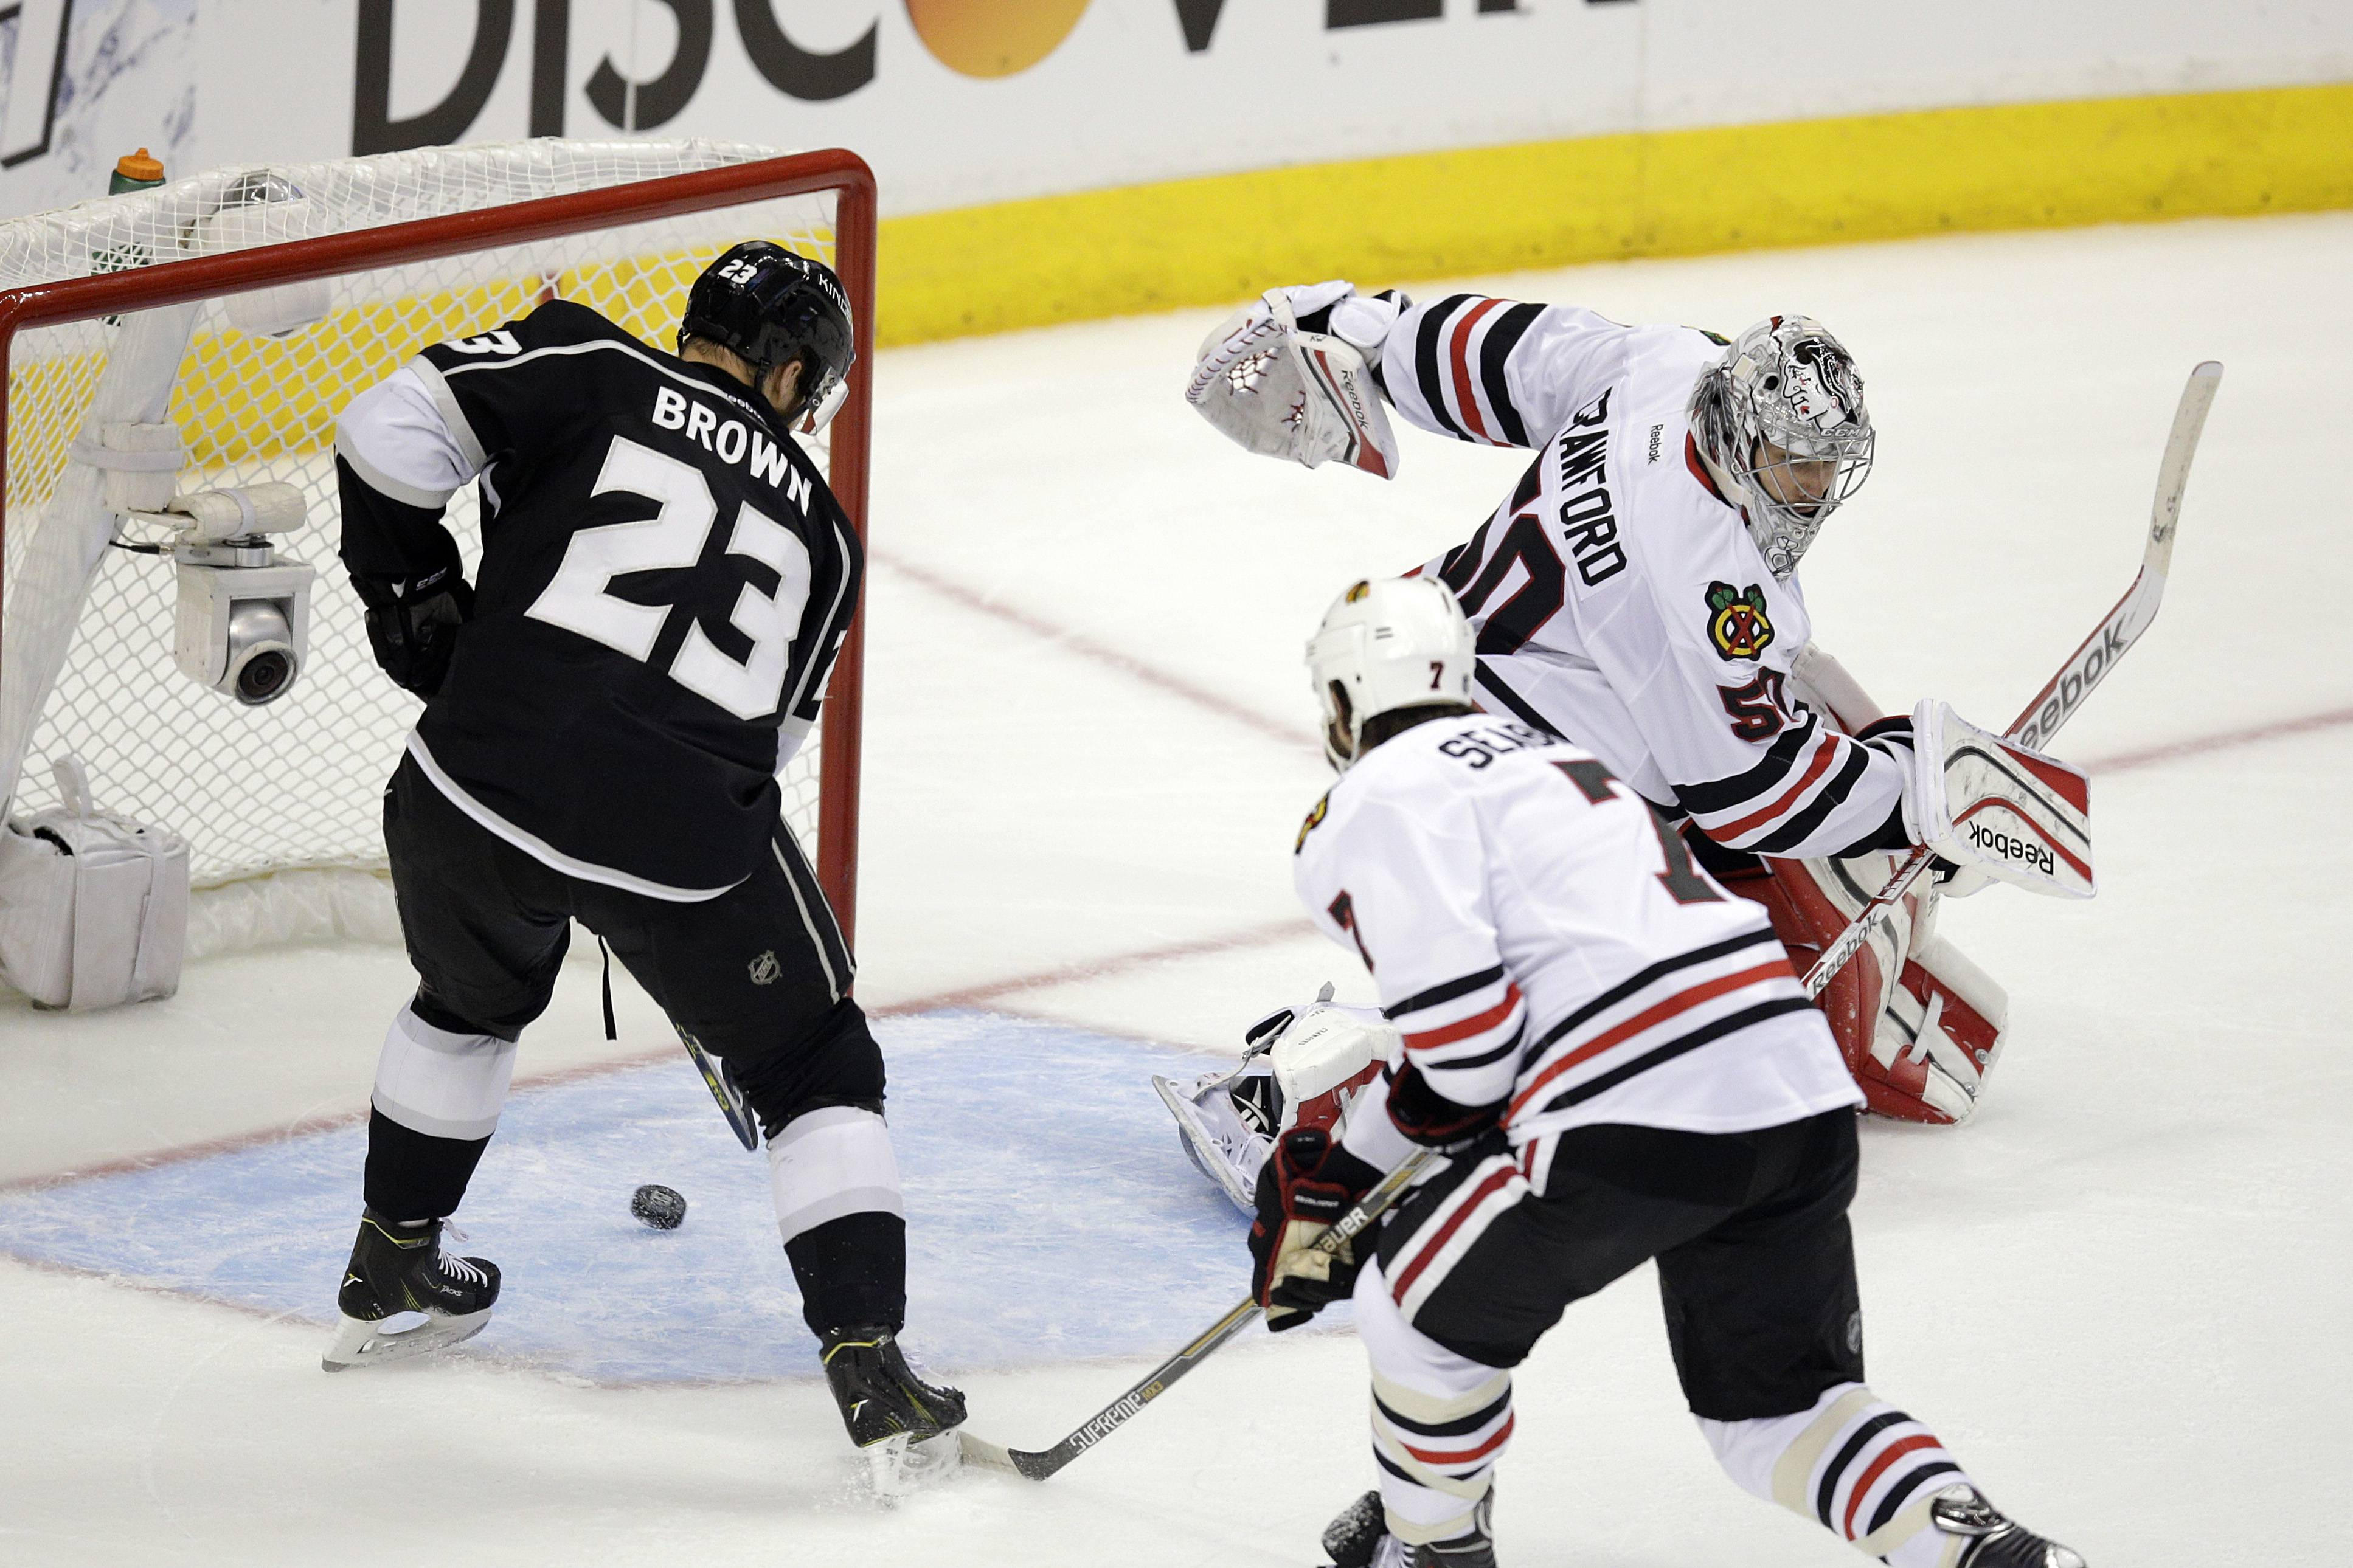 Los Angeles Kings' Dustin Brown, left, scores against Chicago Blackhawks goalie Corey Crawford, right, as Blackhawks' Brent Seabrook skates near during the first period of Game 4 of the Western Conference finals of the NHL hockey Stanley Cup playoffs on Monday, May 26, 2014, in Los Angeles.